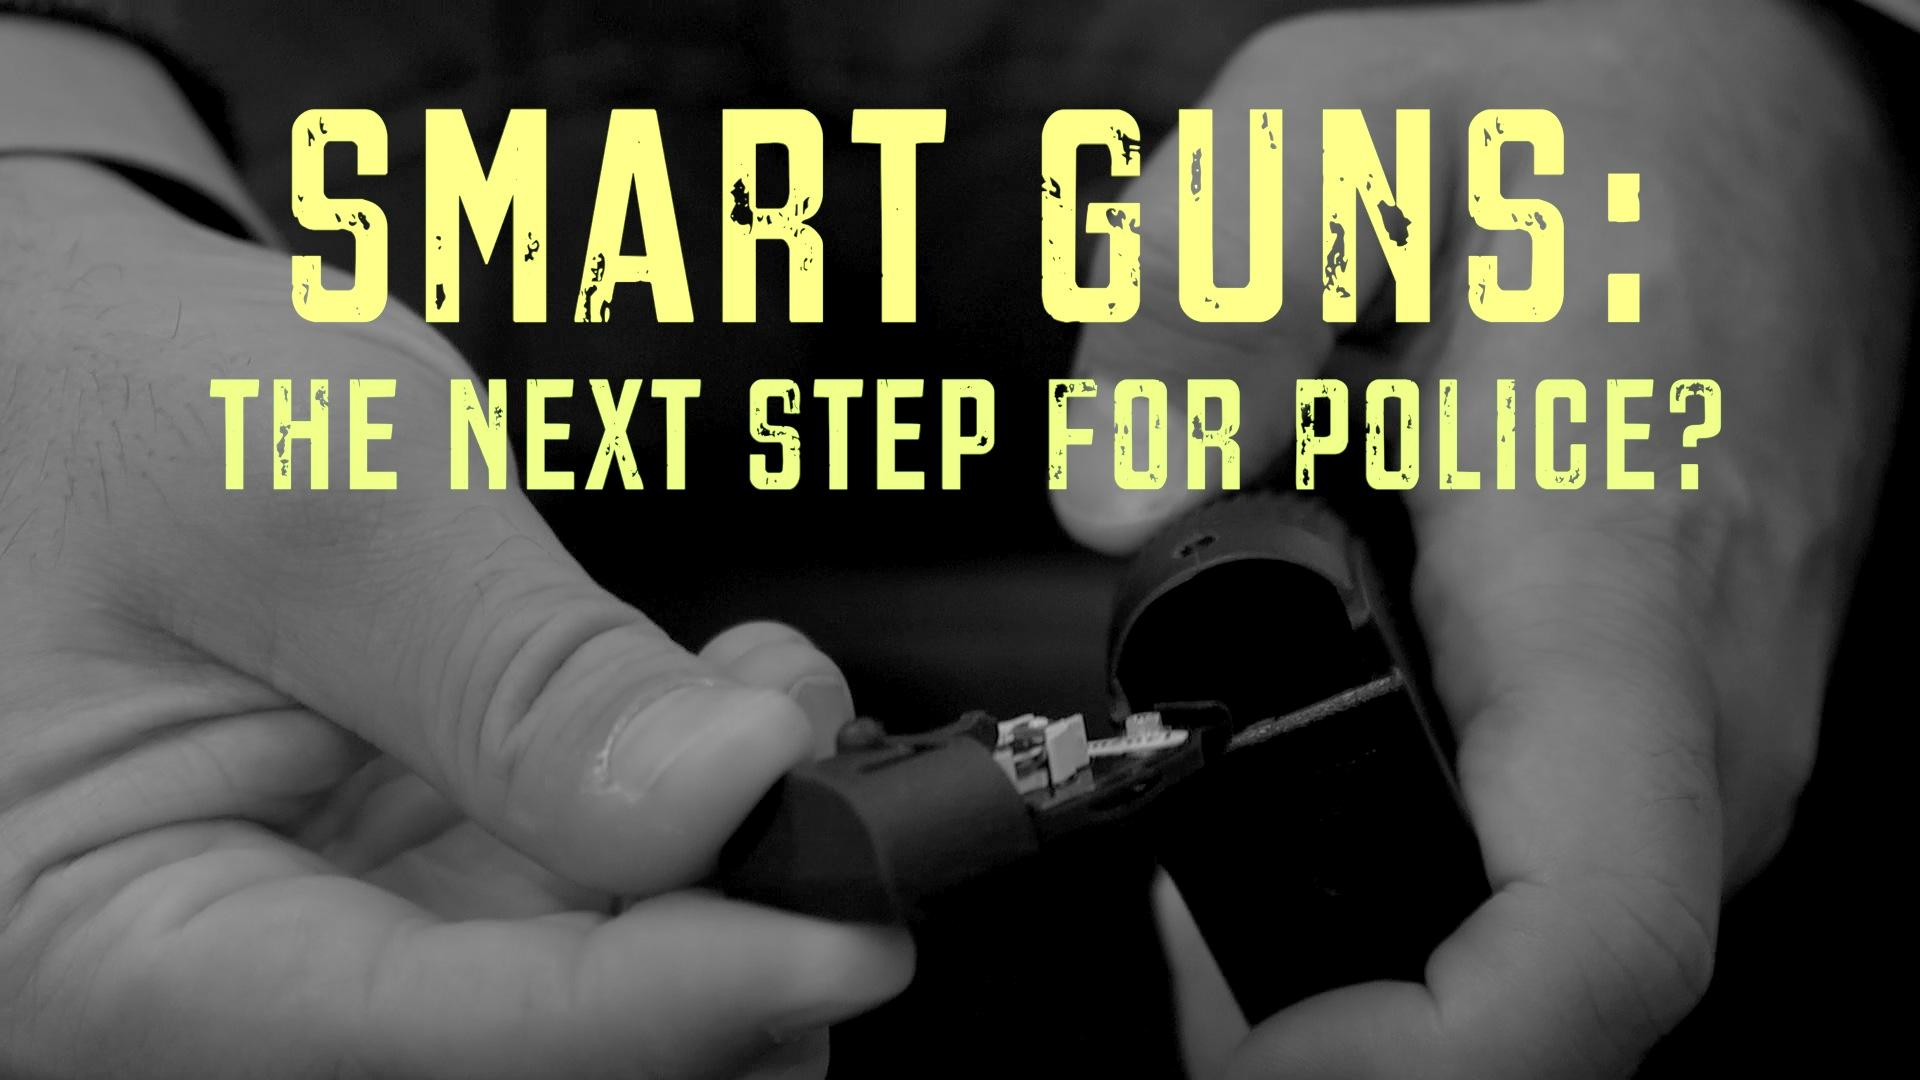 Smart Guns: The Next Step For Police?